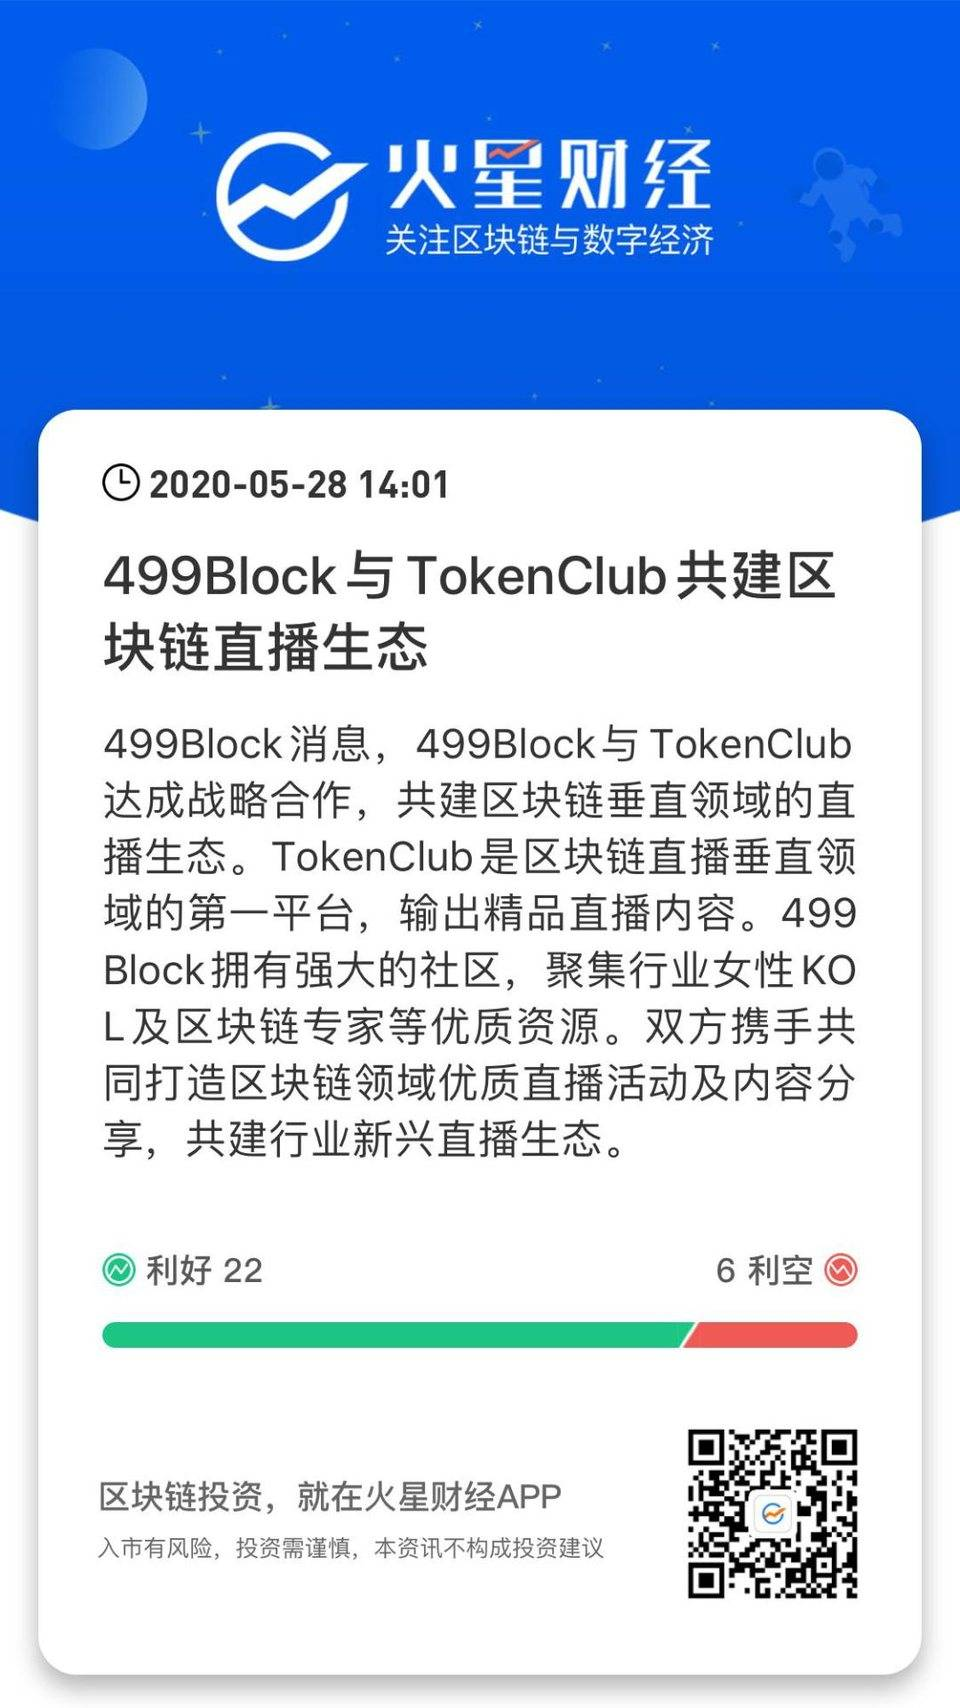 TokenClub Bi-Weekly Report - Issue 115 (5.18-5.31)